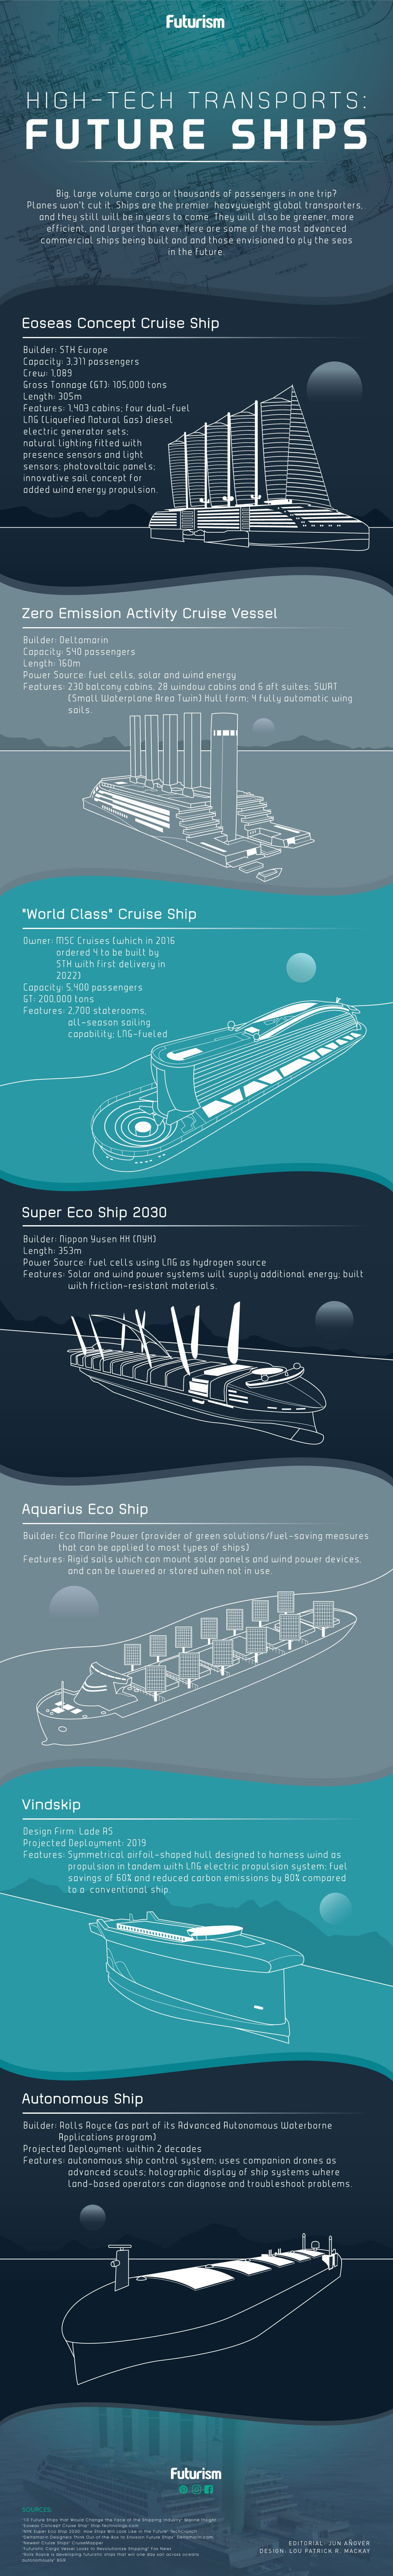 The Future of Shipping is Green and Autonomous